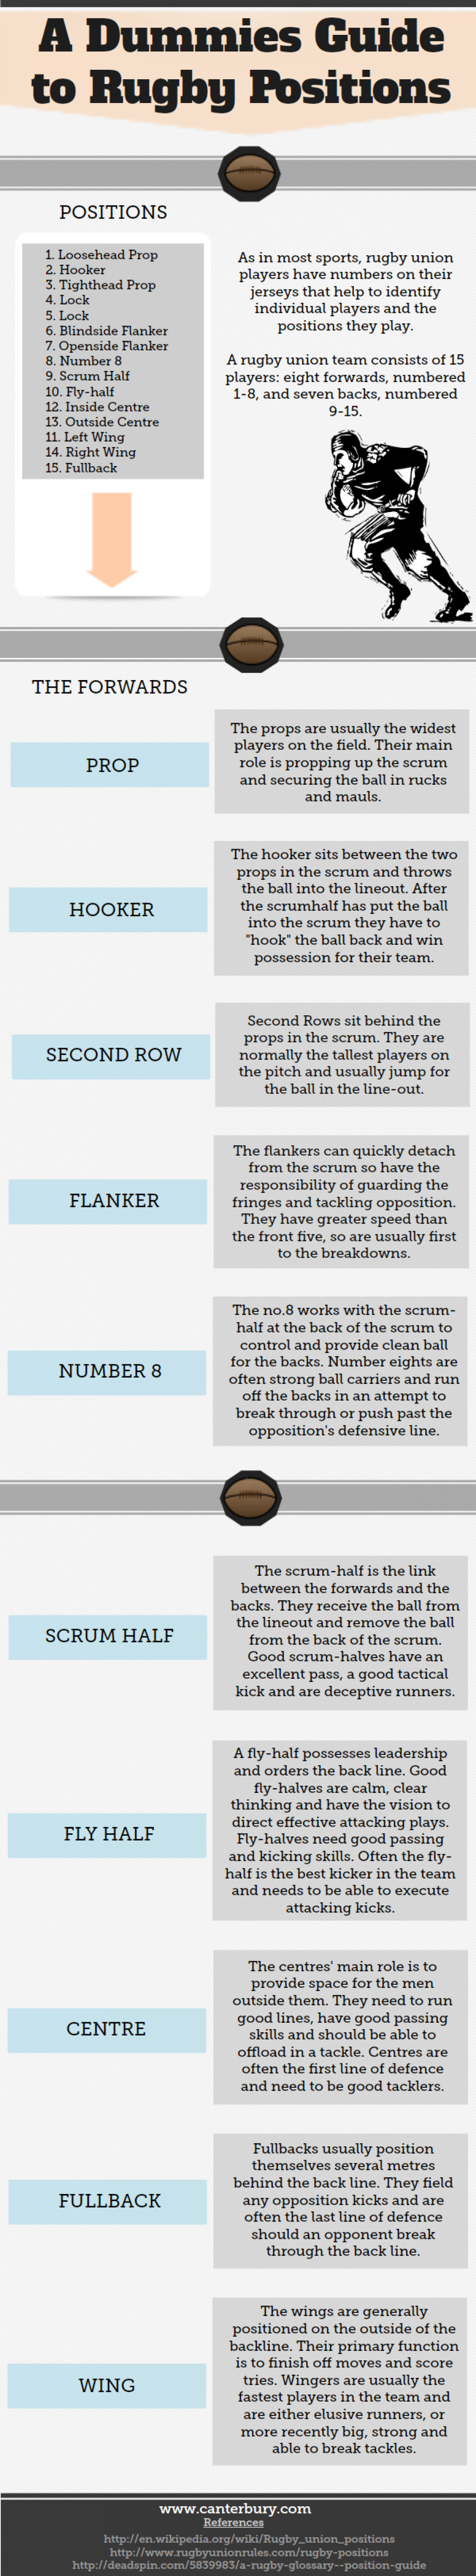 Rugby Positions Guide Infographic